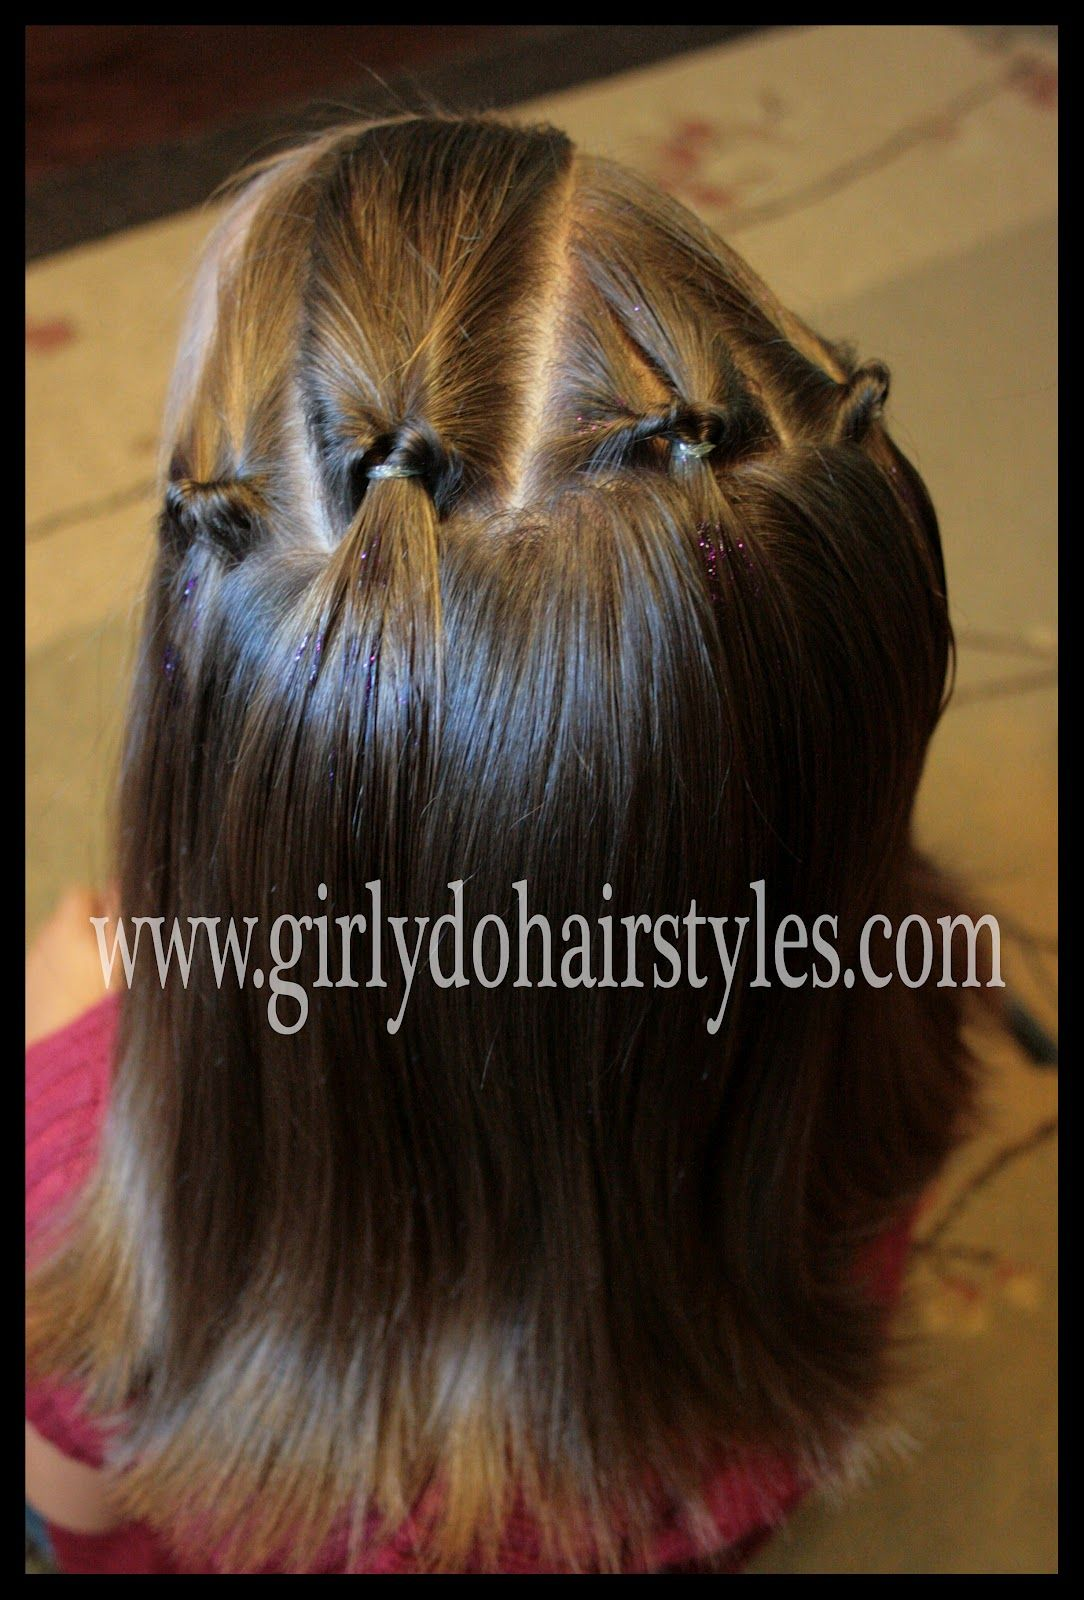 Girly dous by jennlots of little girl hairstyles for long hair